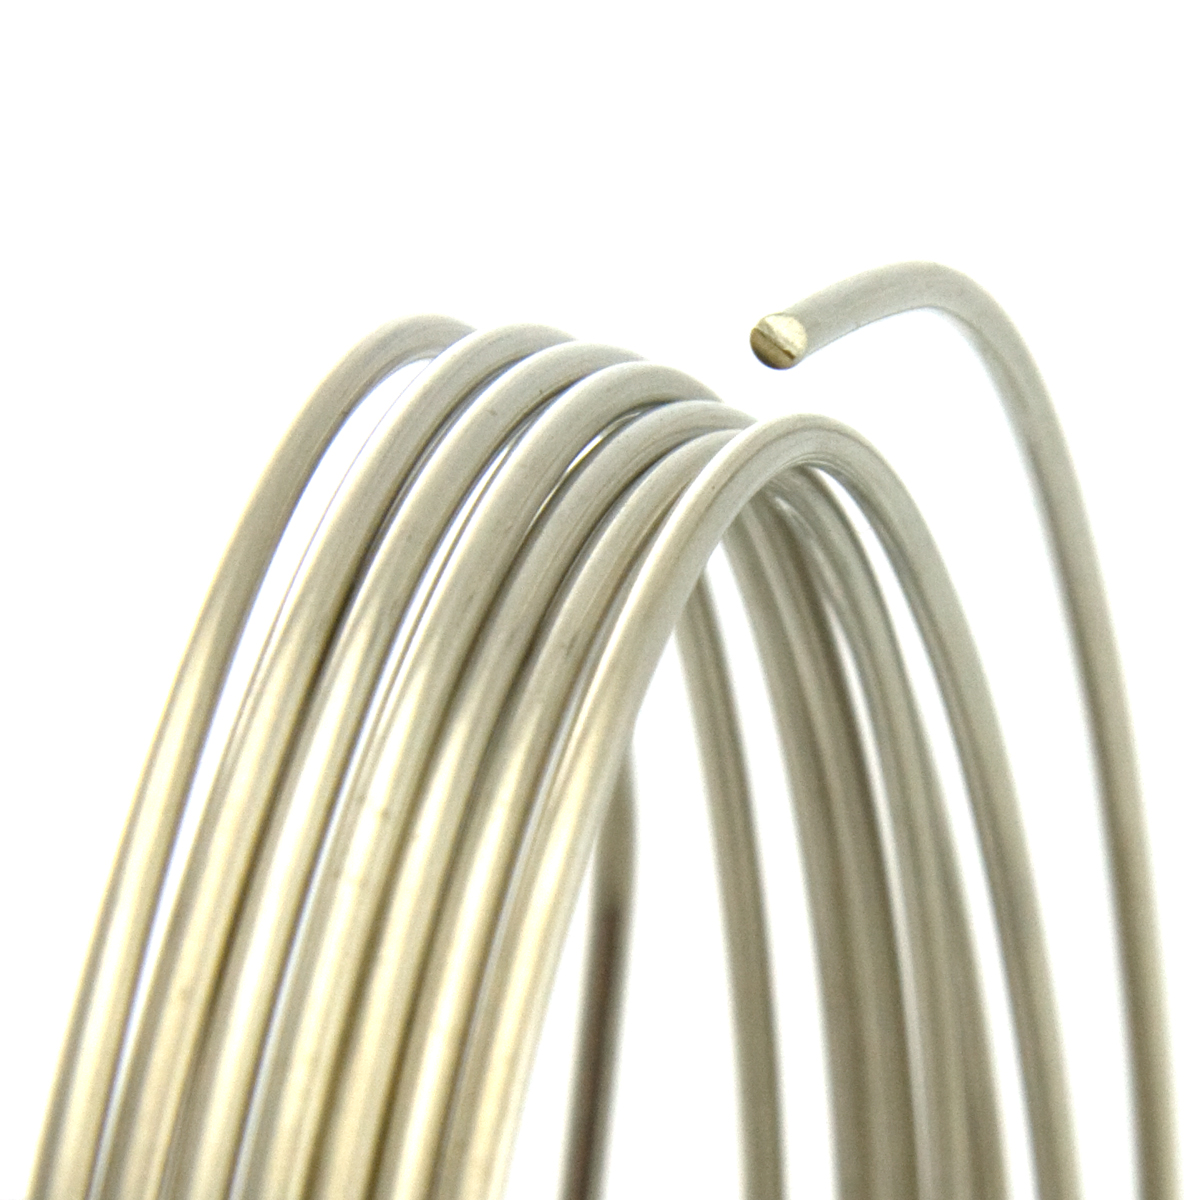 Nickel silver round wire half hard 21 gauge wired up beads nickel silver round wire half hard 21 gauge wired up beads jewelry making supplies wubbers pliers greentooth Image collections